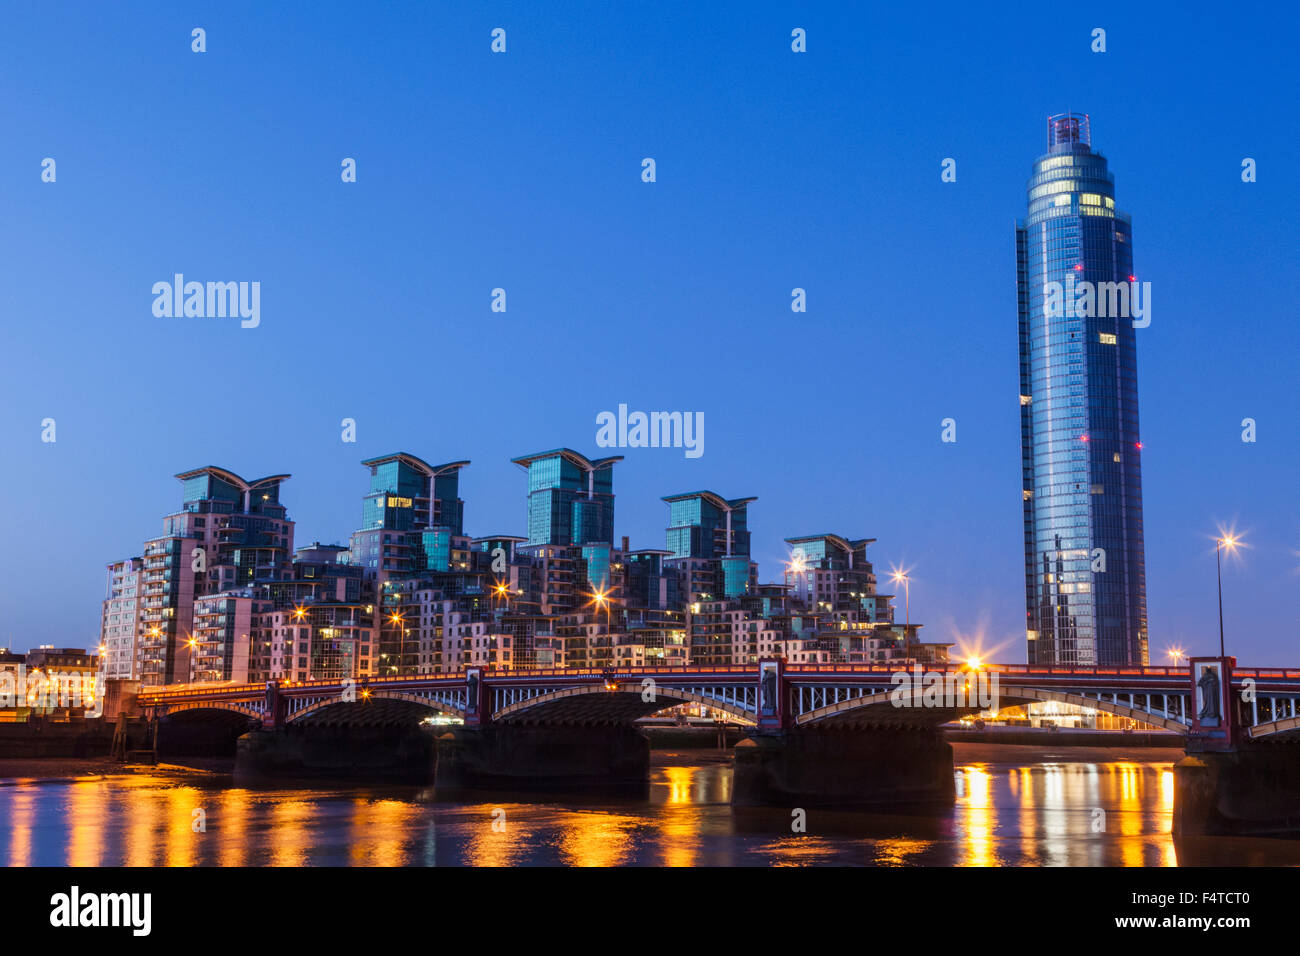 England, London, Vauxhall, Saint George Wharf and Vauxhall Tower at Dawn - Stock Image